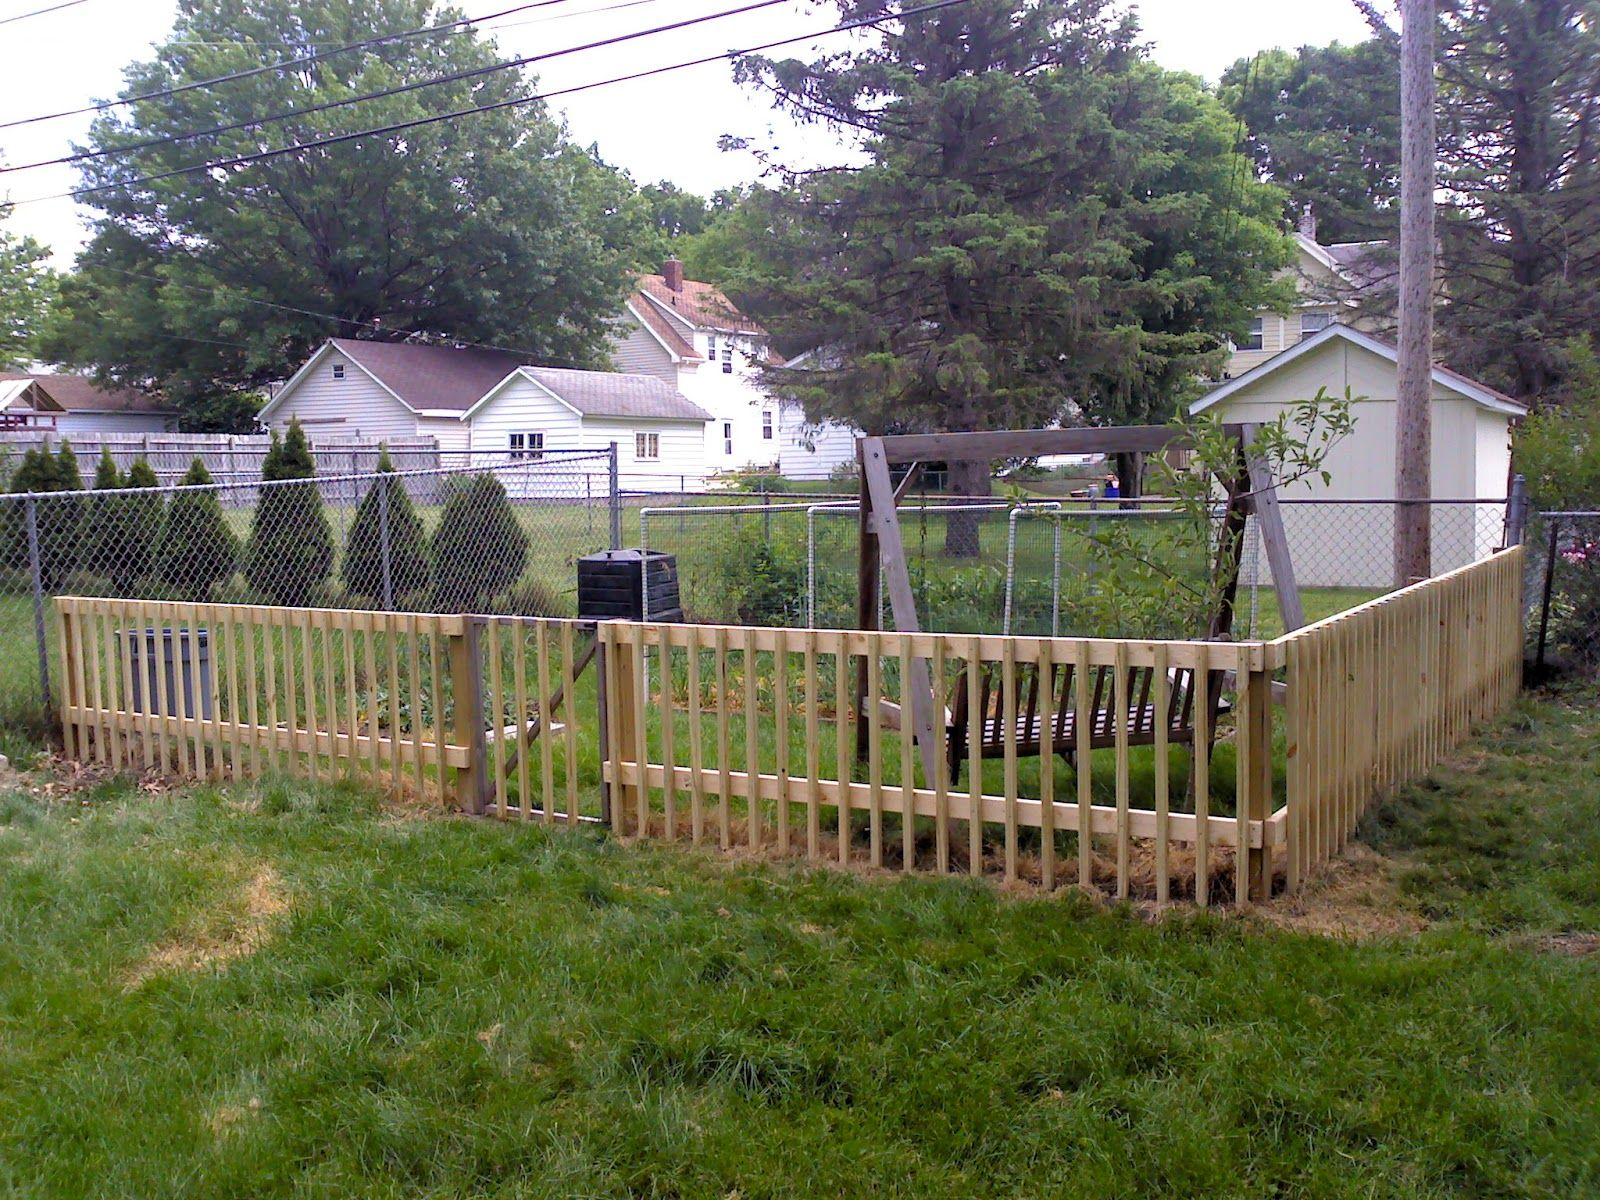 17 Diy Garden Fence Ideas To Keep Your Plants Cheap Garden